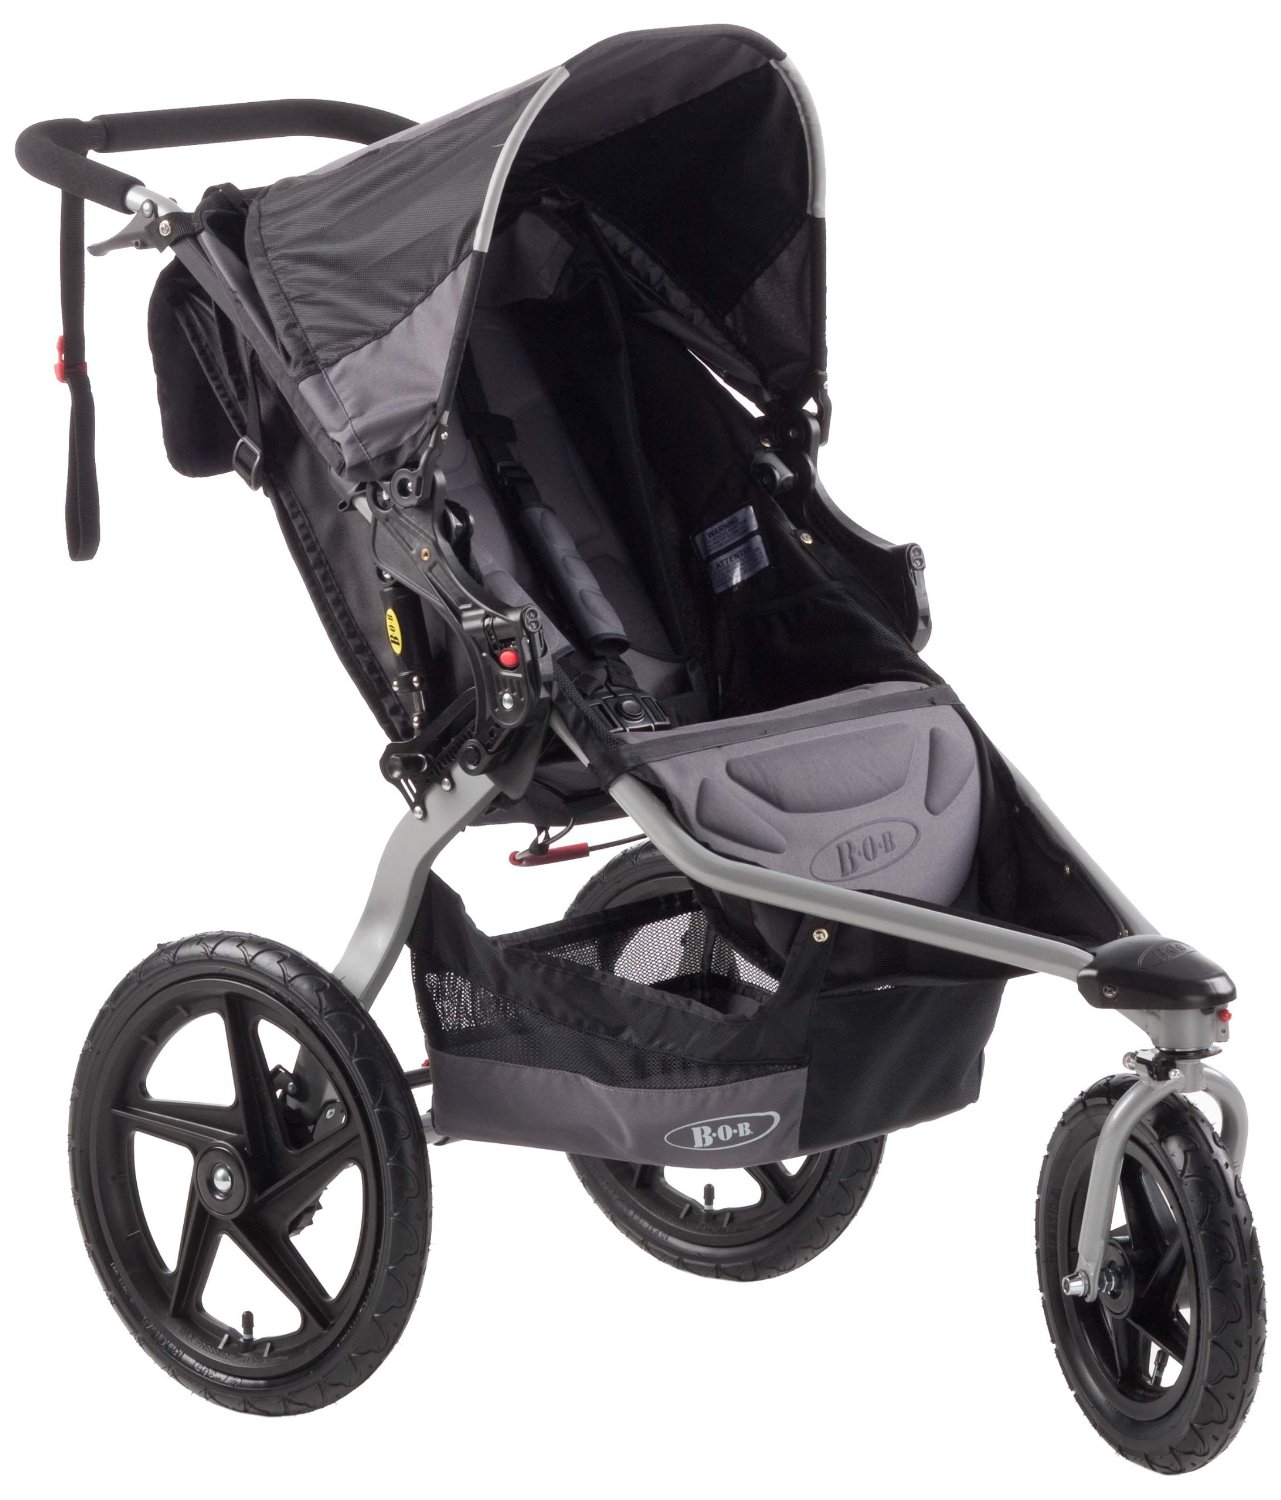 18 best strollers - it's baby time!